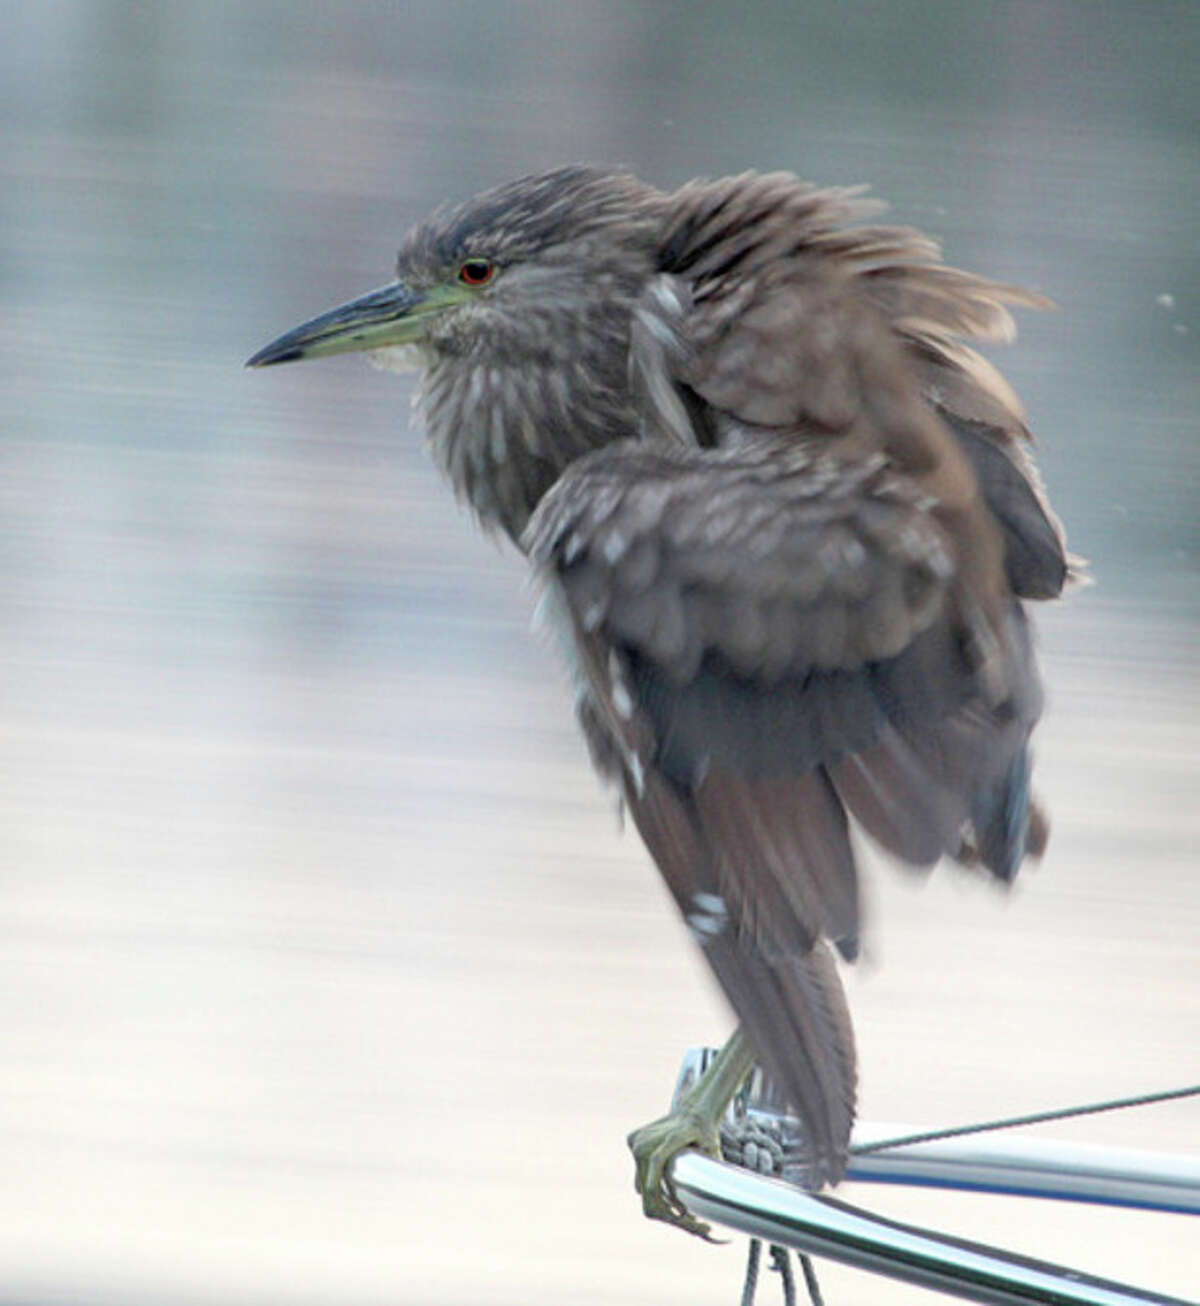 Photo by Chris Bosak A Black-crowned Night Heron sits on the railing of a boat along the Norwalk River this summer.